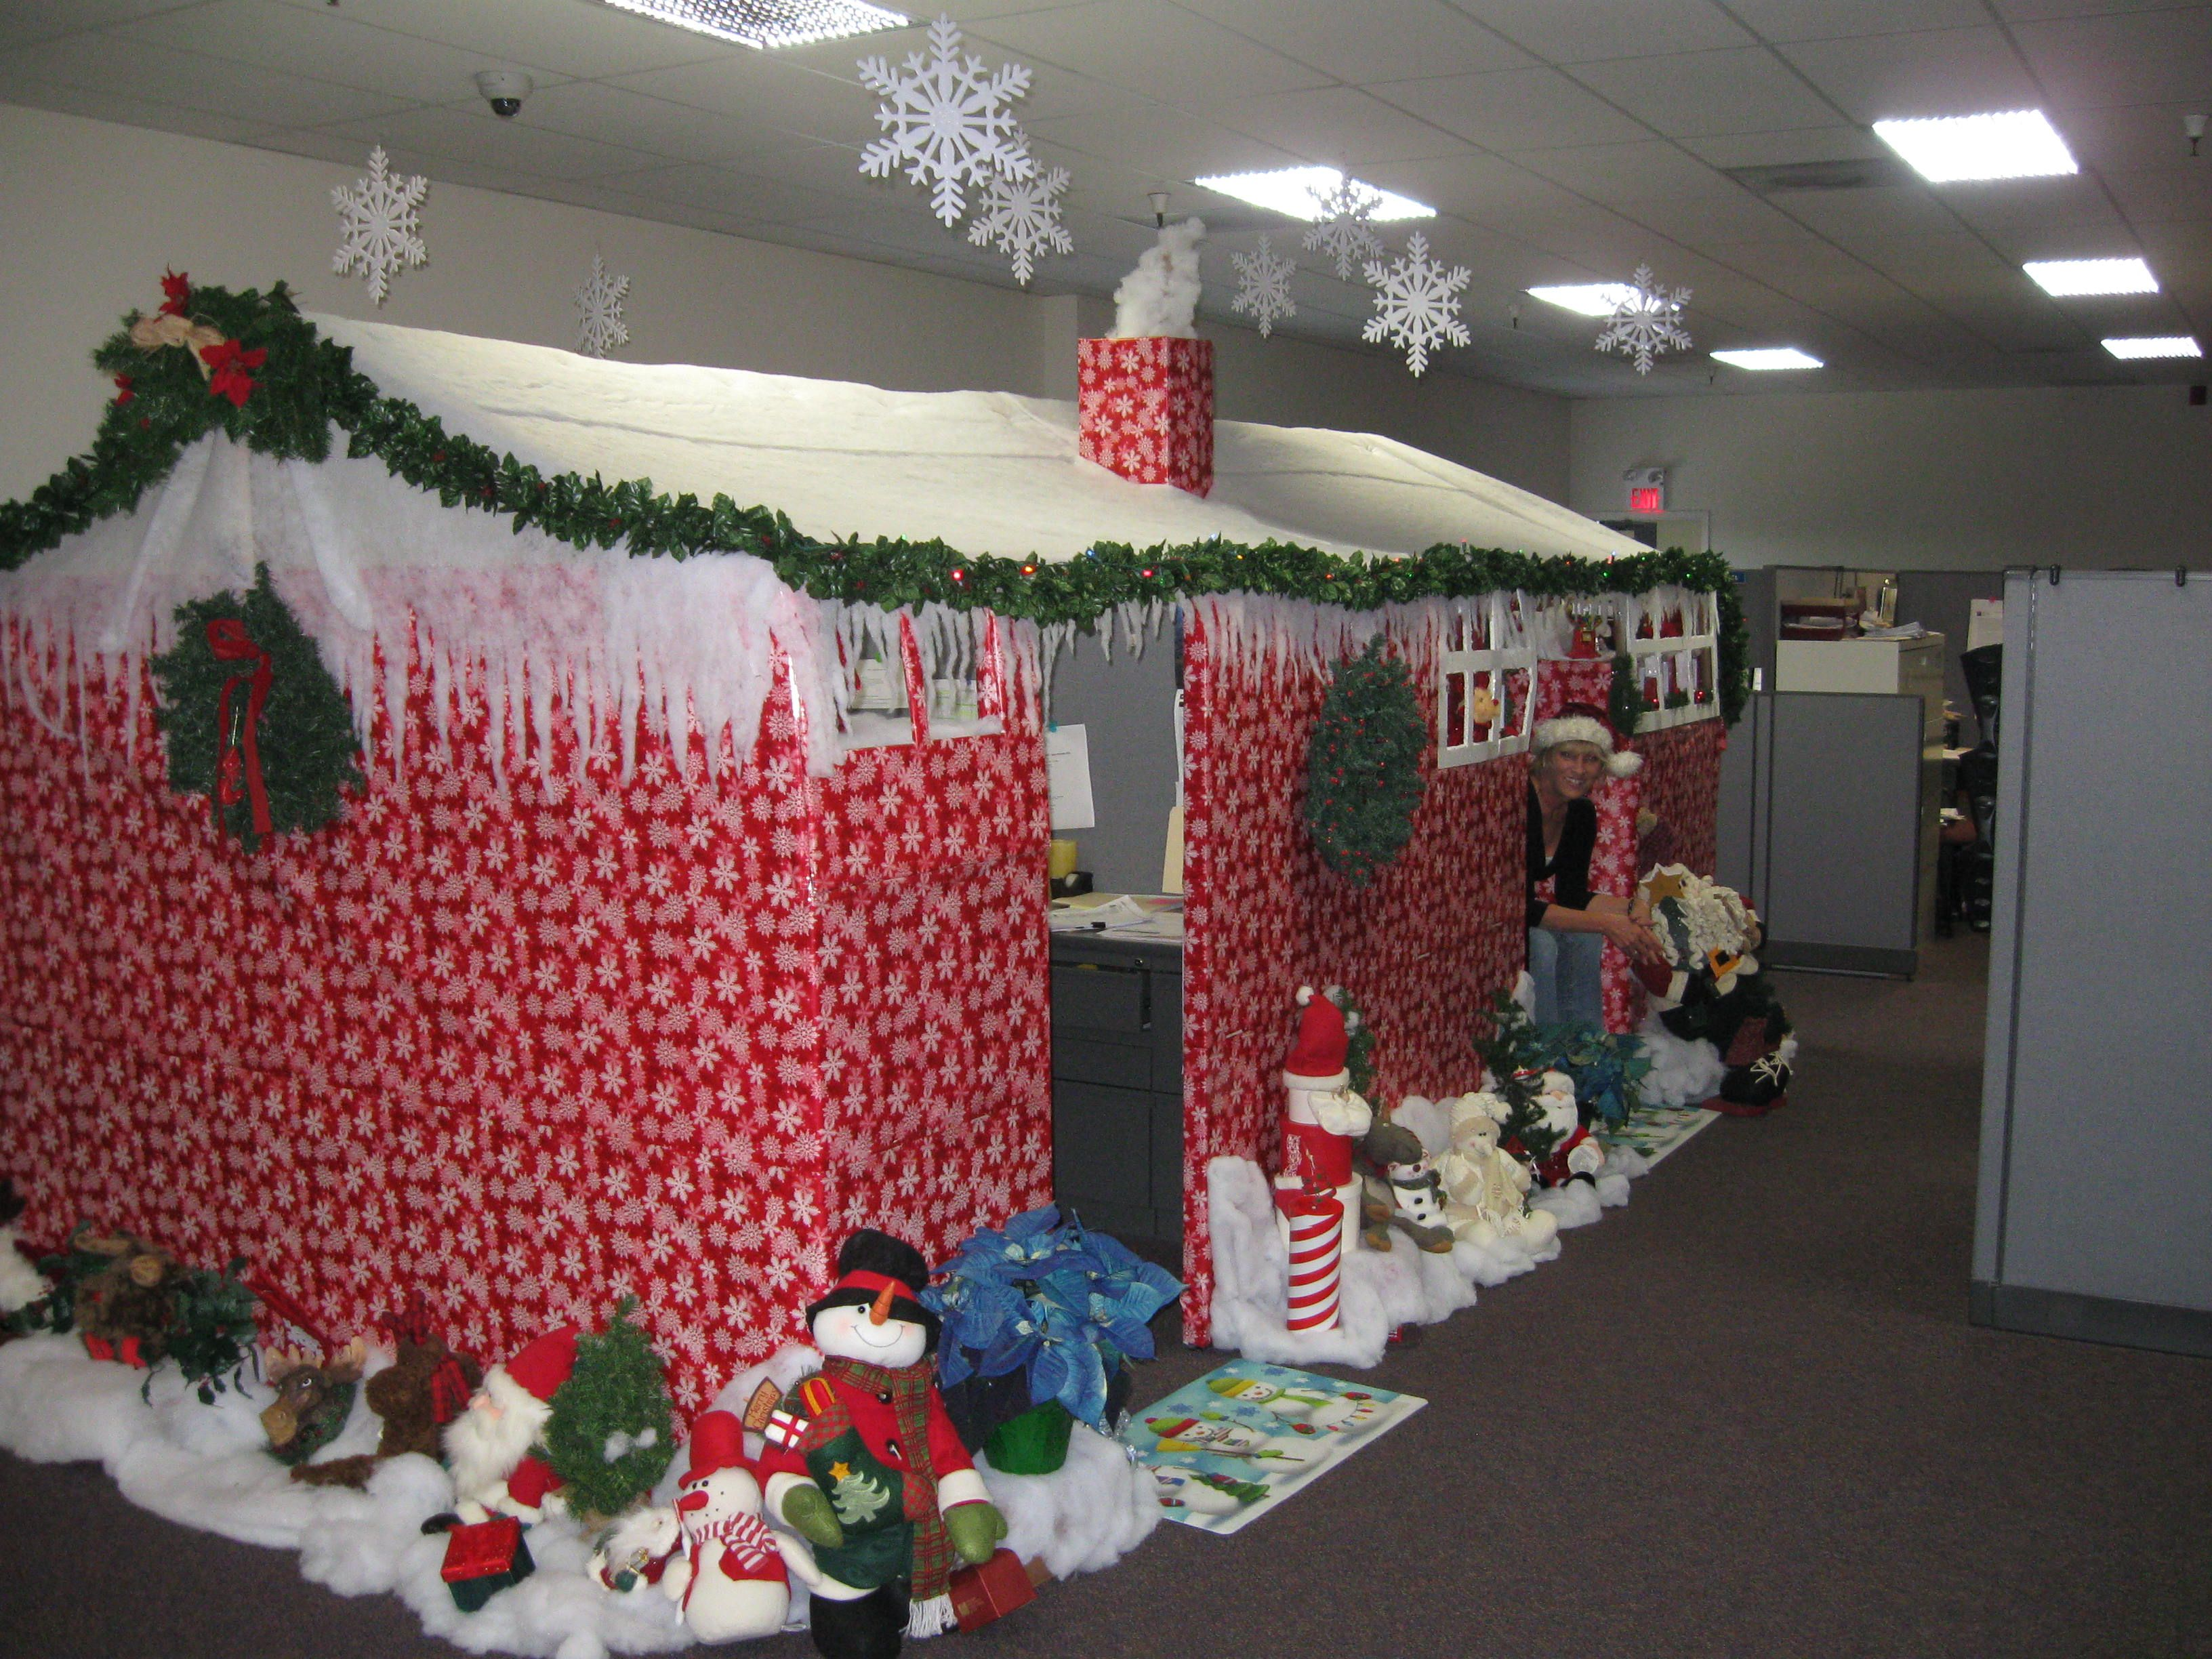 office decoration ideas for christmas. office cubicles holiday decor ideas cubicle holidays at work place decoration for christmas i